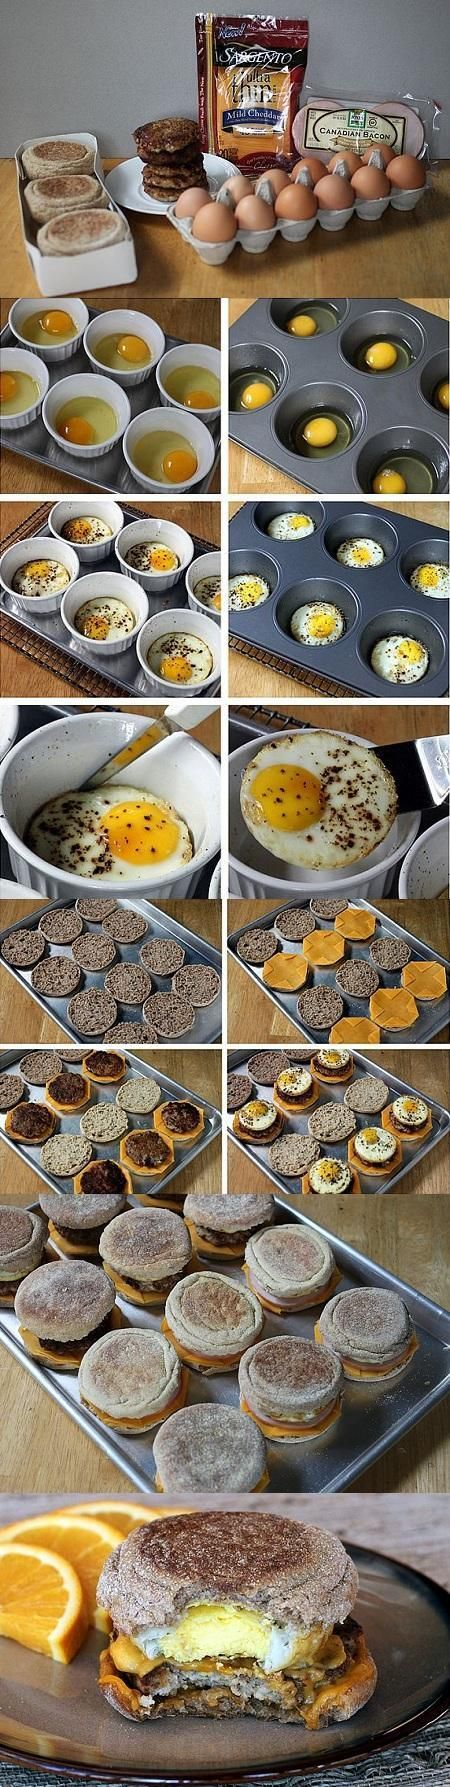 Healthy-Egg-McMuffin-Copycats -